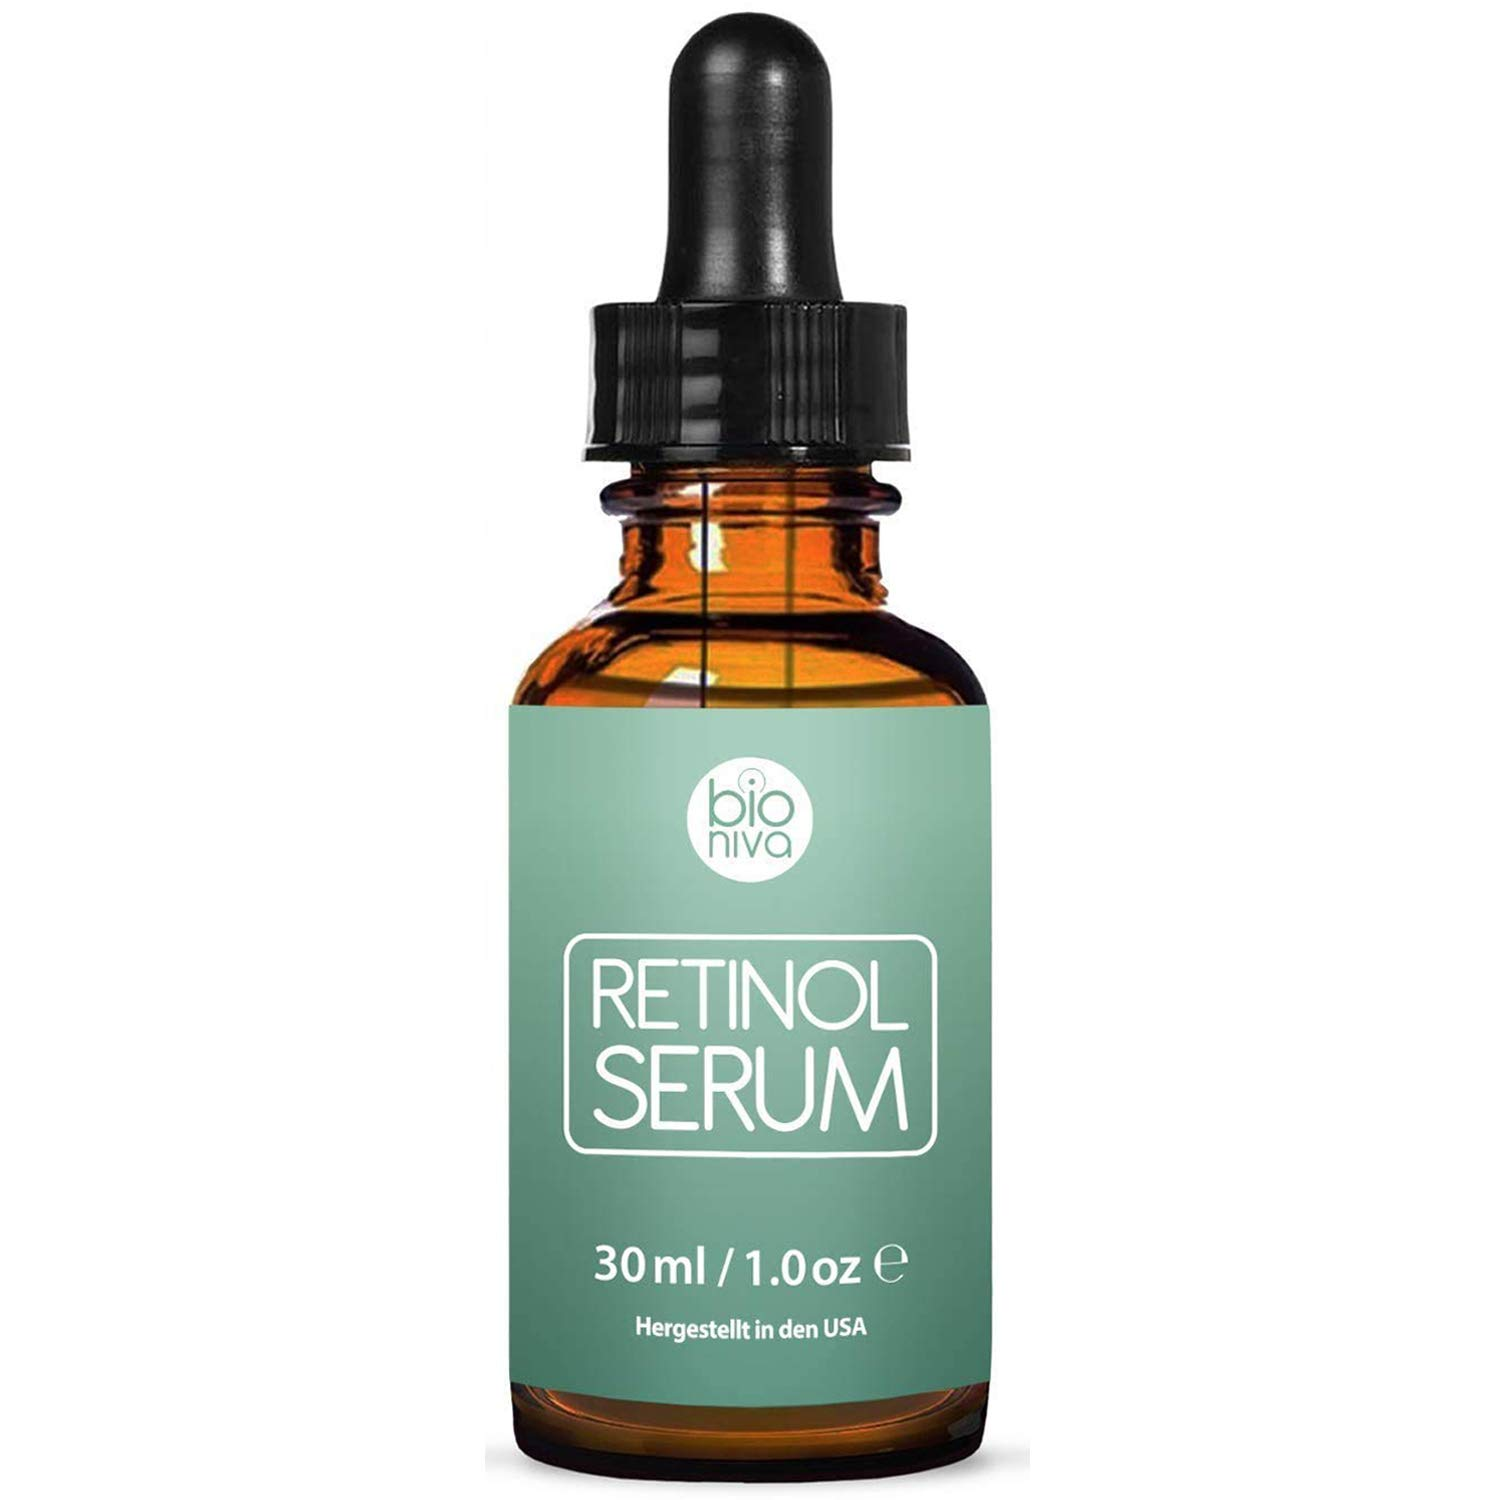 Retinol Serum - Retinol Liposome Delivery System with Vitamin C, Aloe, and Vegan Hyaluronic Acid - High Strength Anti Aging Serum for face, décolleté and body from Bioniva 30ml